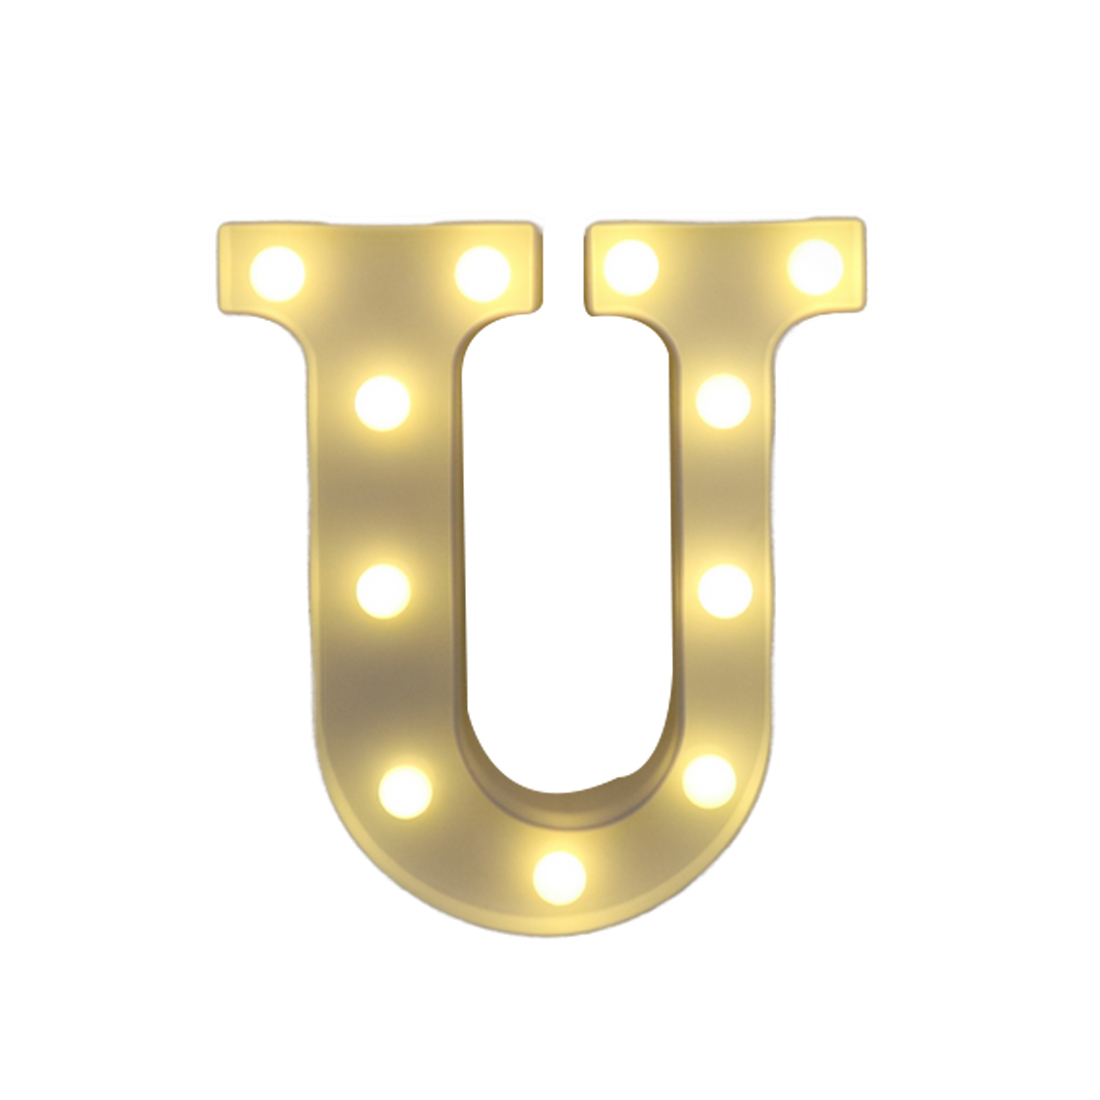 U-Z Light Up Decoration Symbol Indoor Wall Alphabet Letter LED Light White Decoration We ...